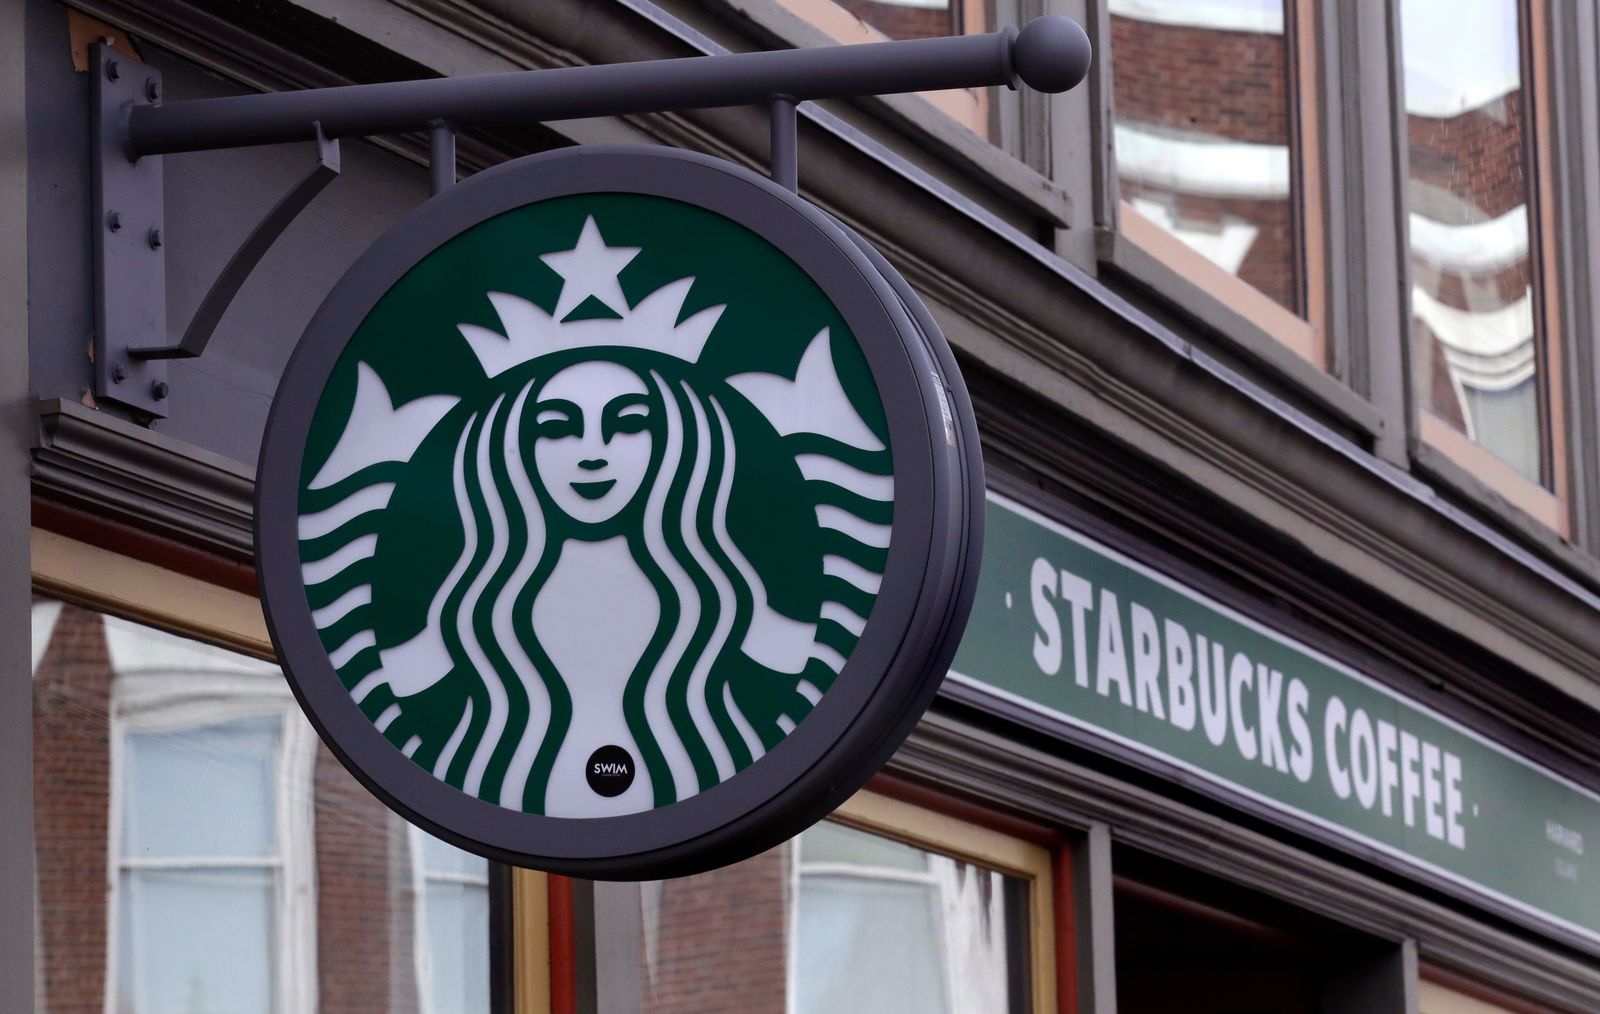 FILE- This Dec. 13, 2018, file photo shows a sign for a Starbucks Coffee shop in Harvard Square in Cambridge, Mass. Starbucks Corp. reports financial results Thursday, Jan. 24, 2019. (AP Photo/Charles Krupa, File)